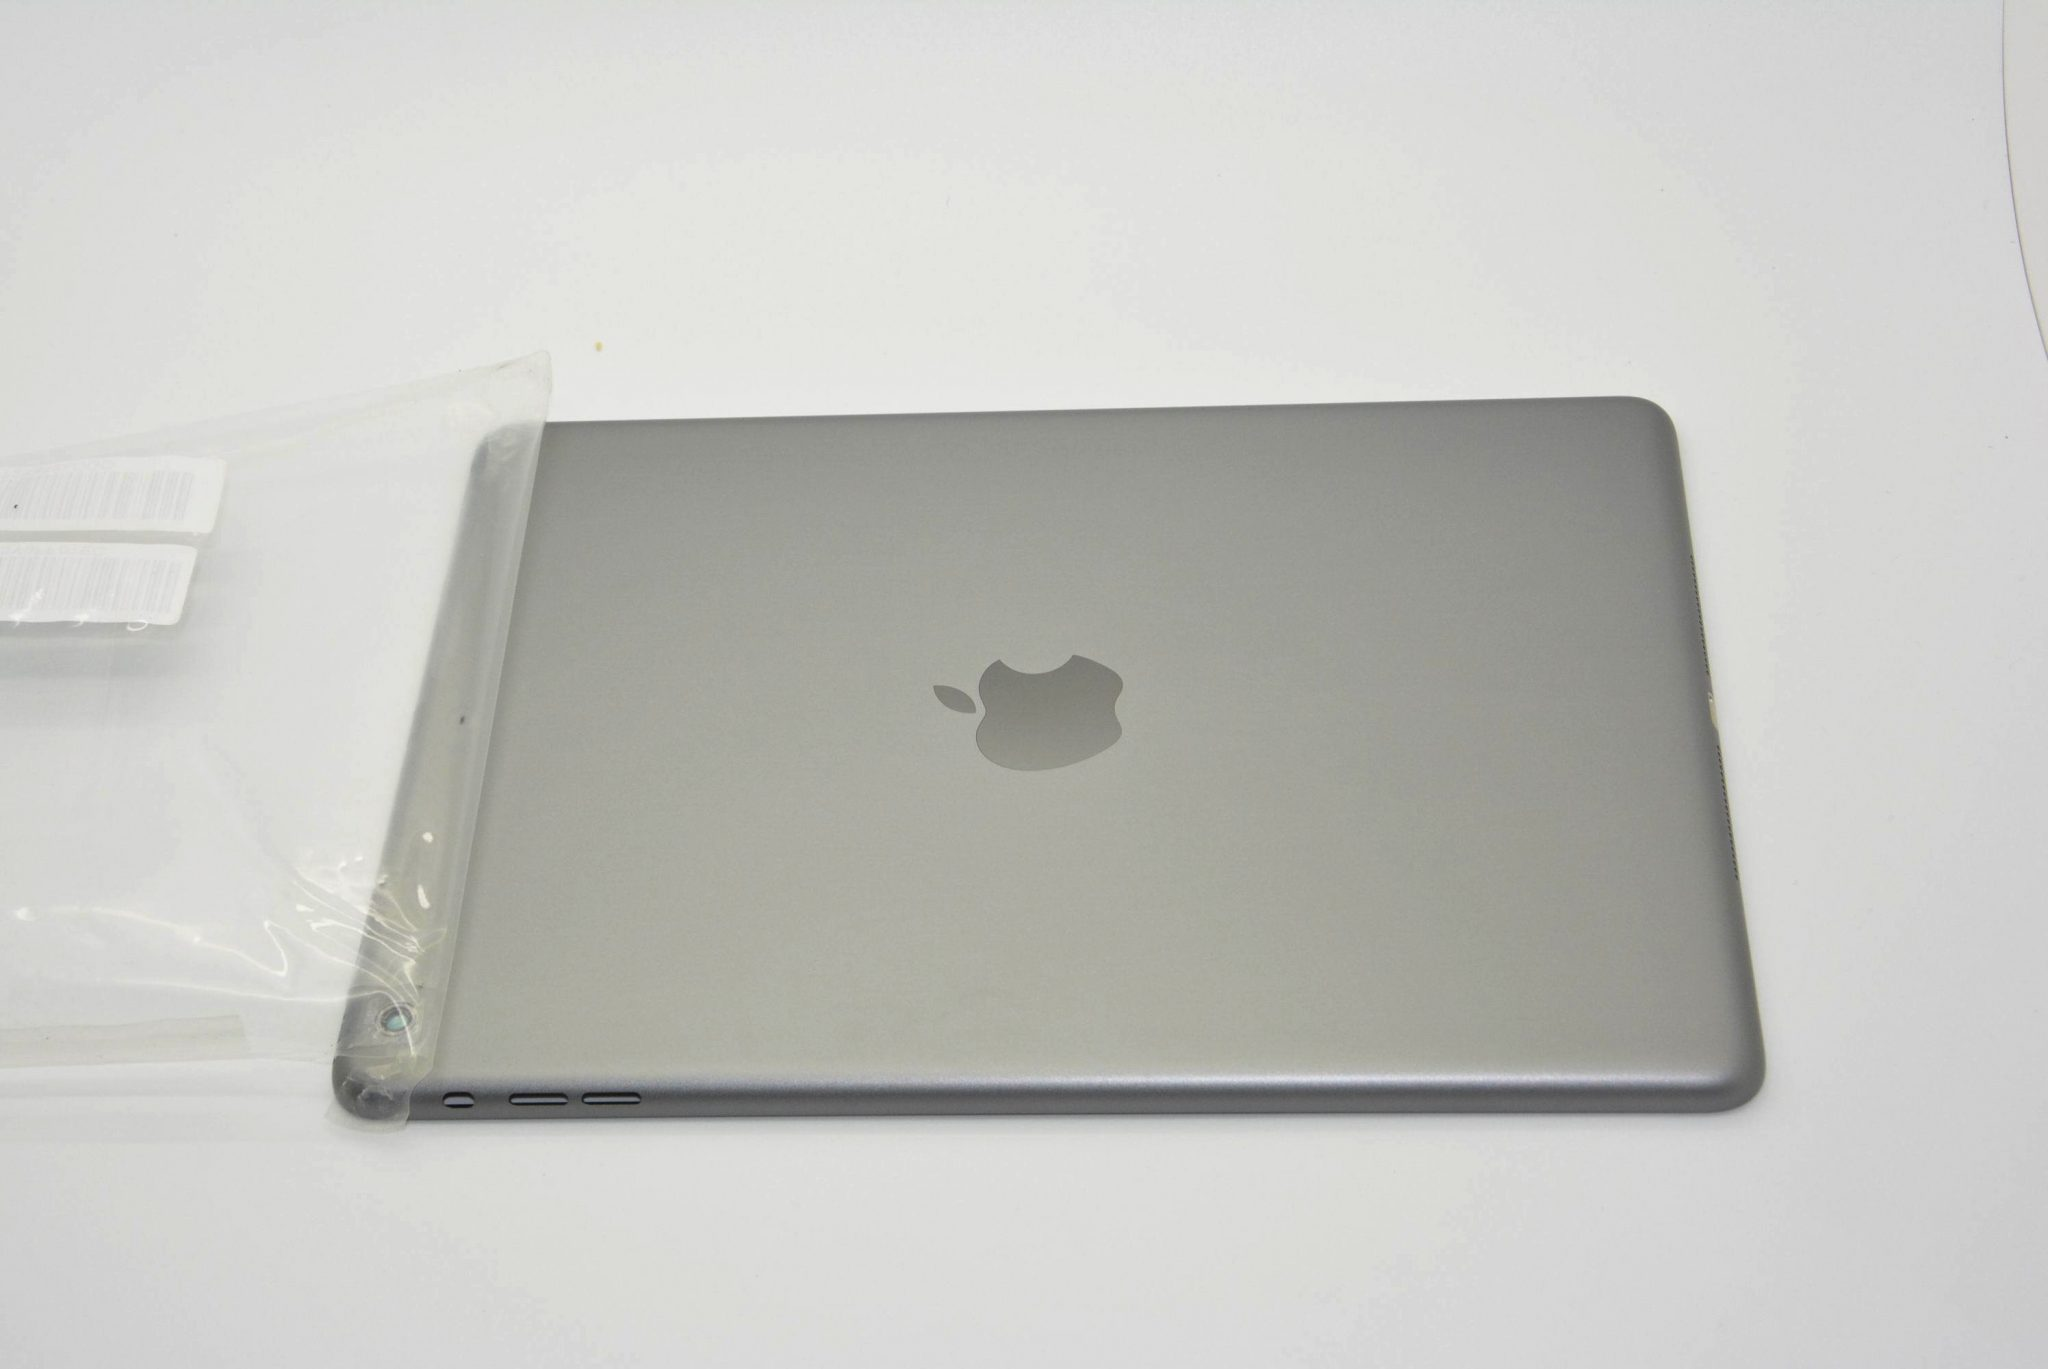 apple-space-gray-ipad-5